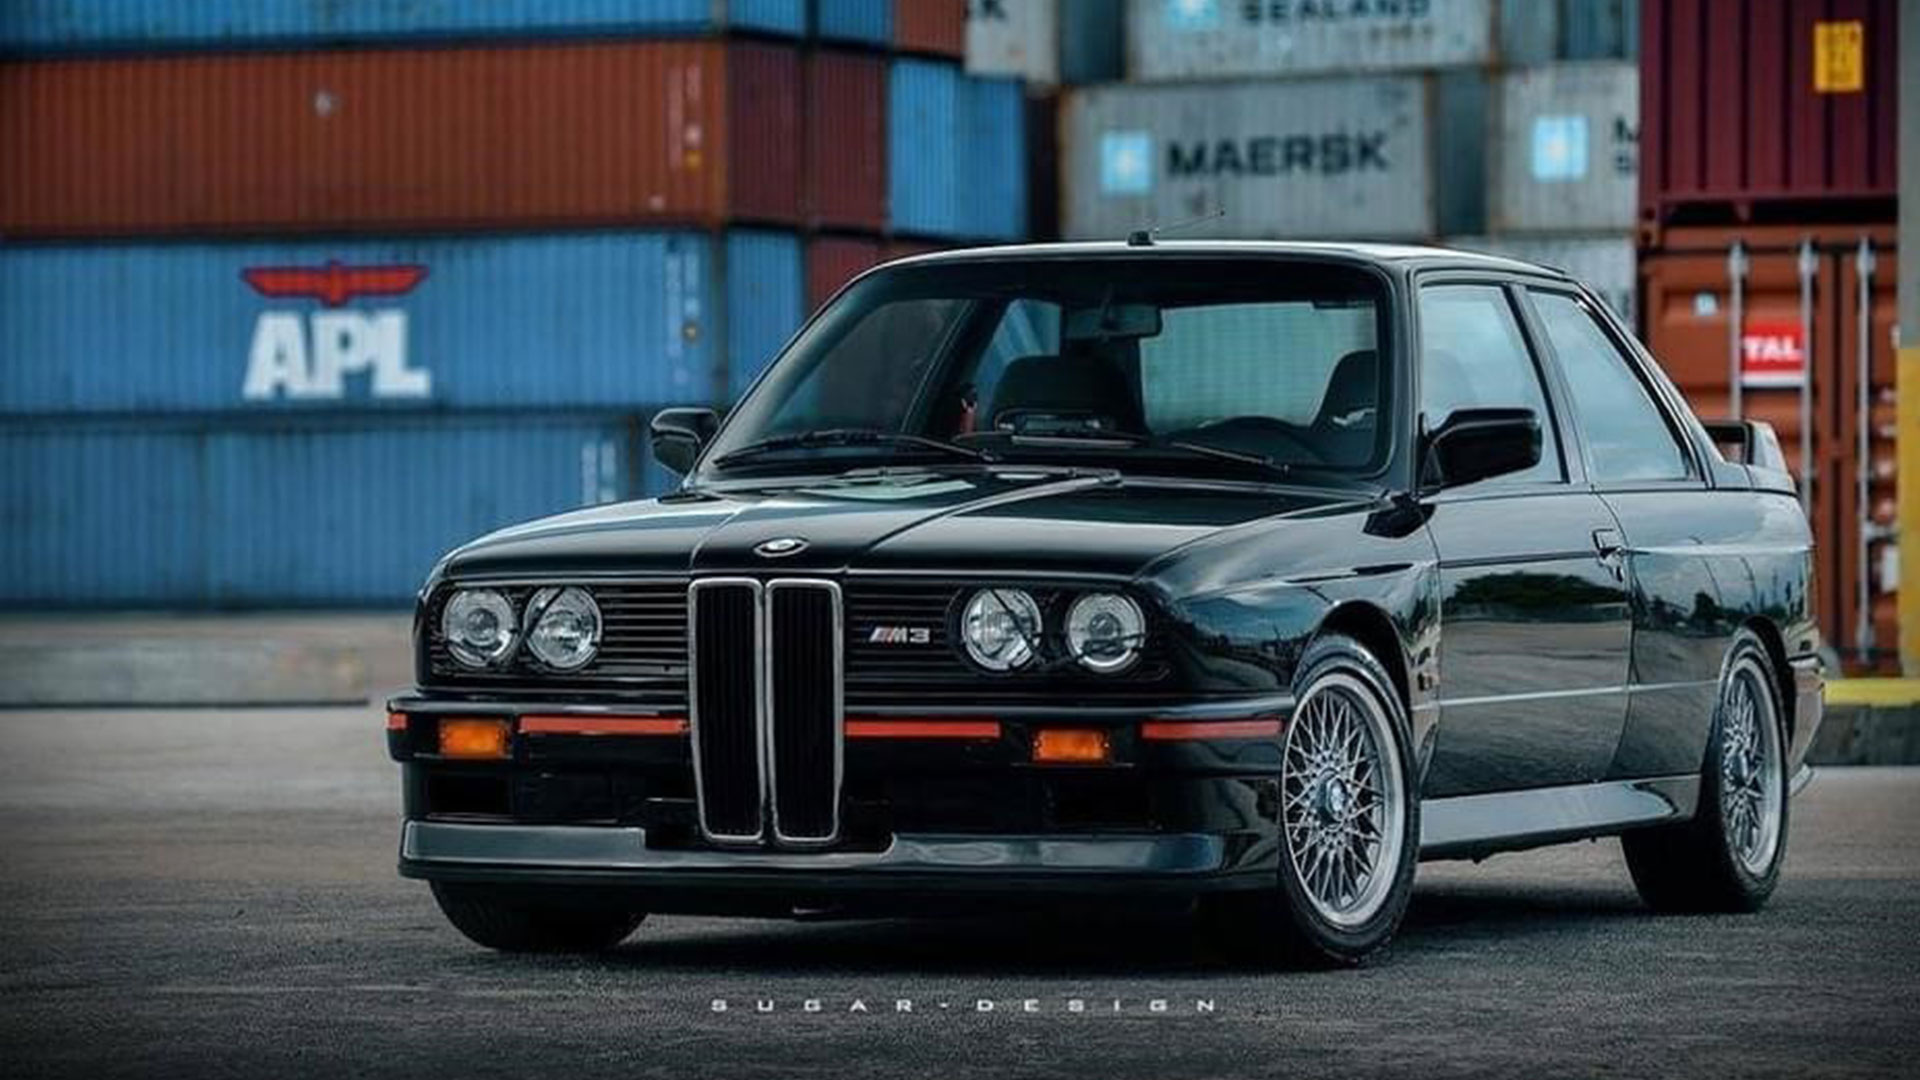 BMW M3 E30 met grote grille